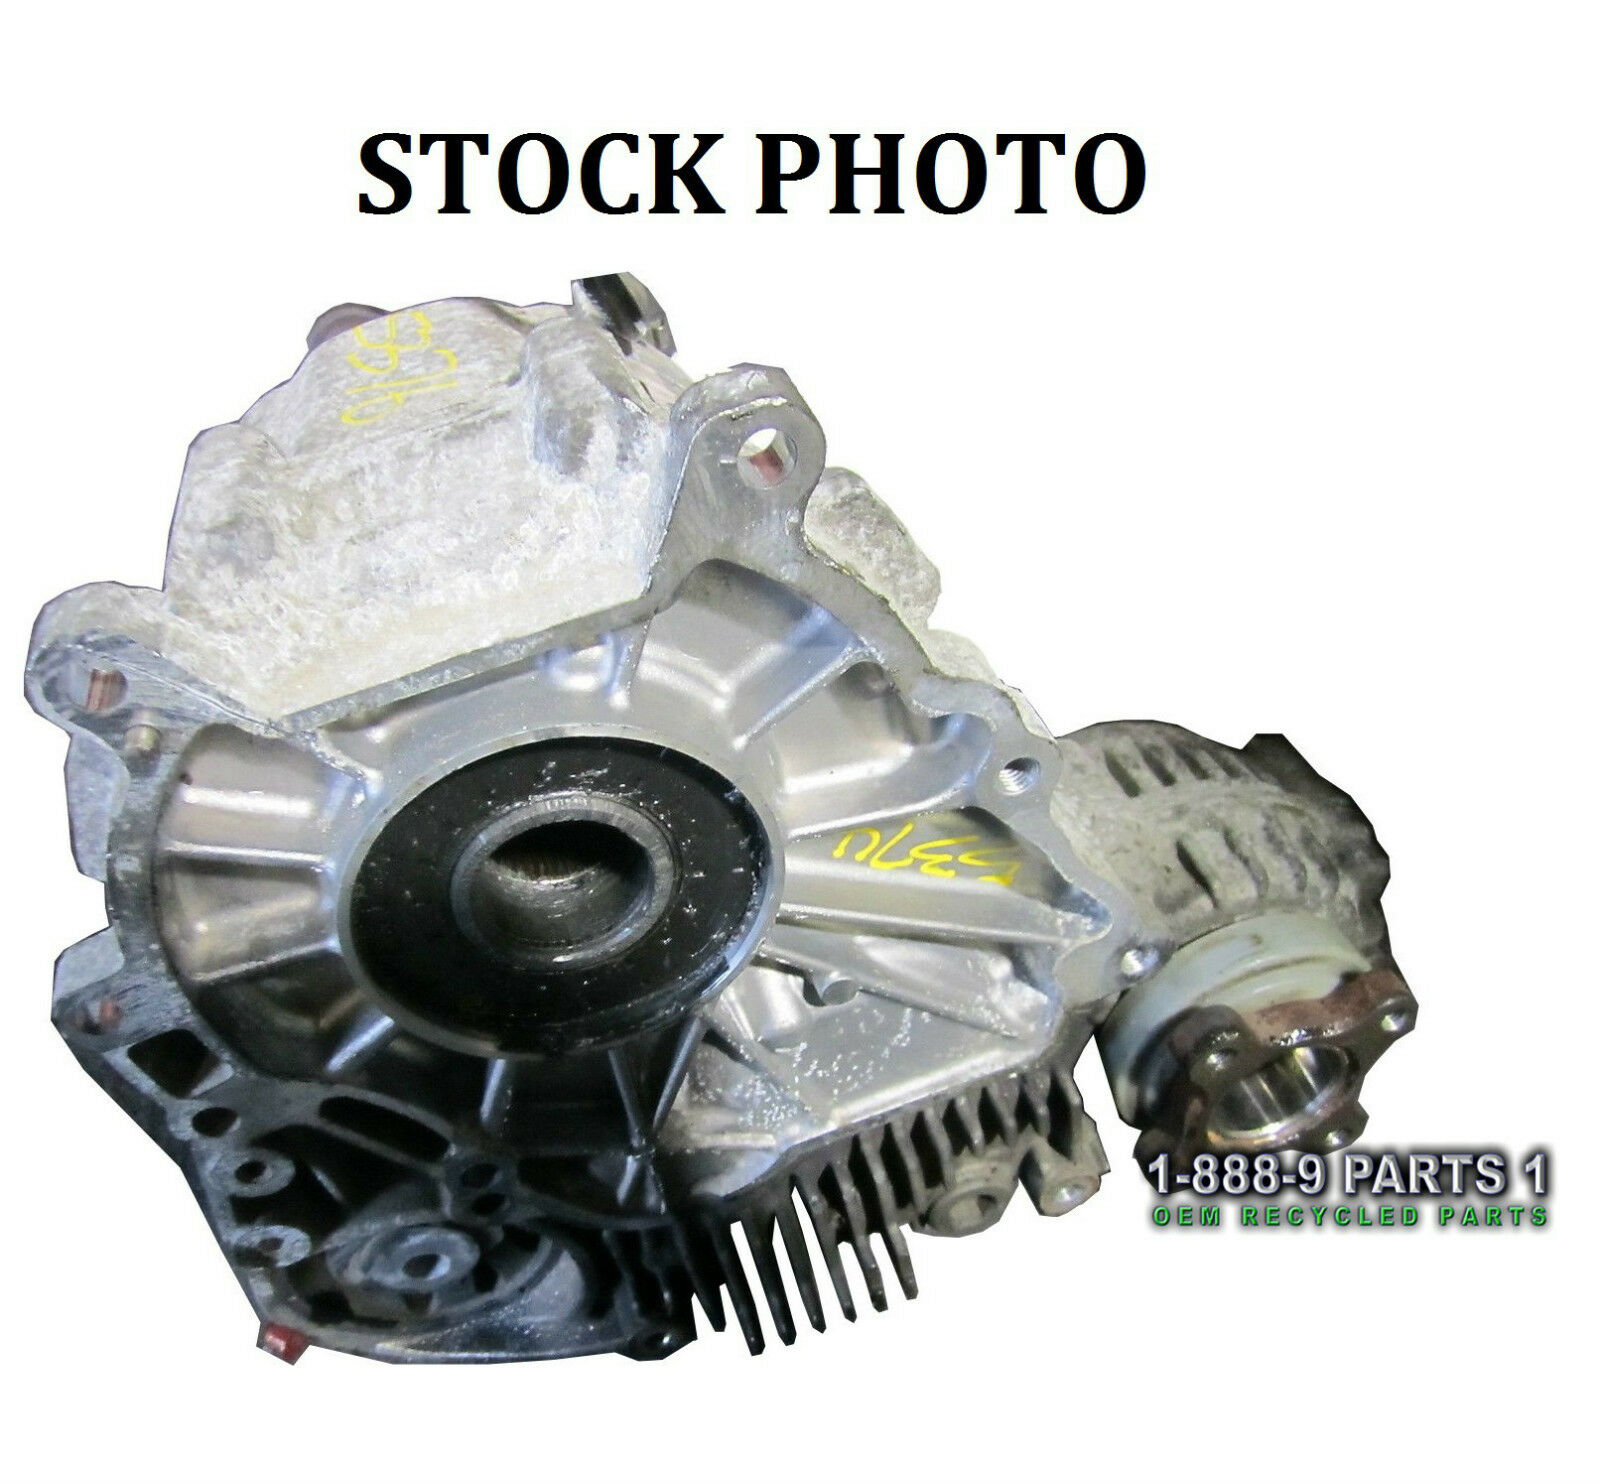 TRANSFER CASE W/ SHIFT MOTOR AWD BMW 328xi 330xi 335xi E90